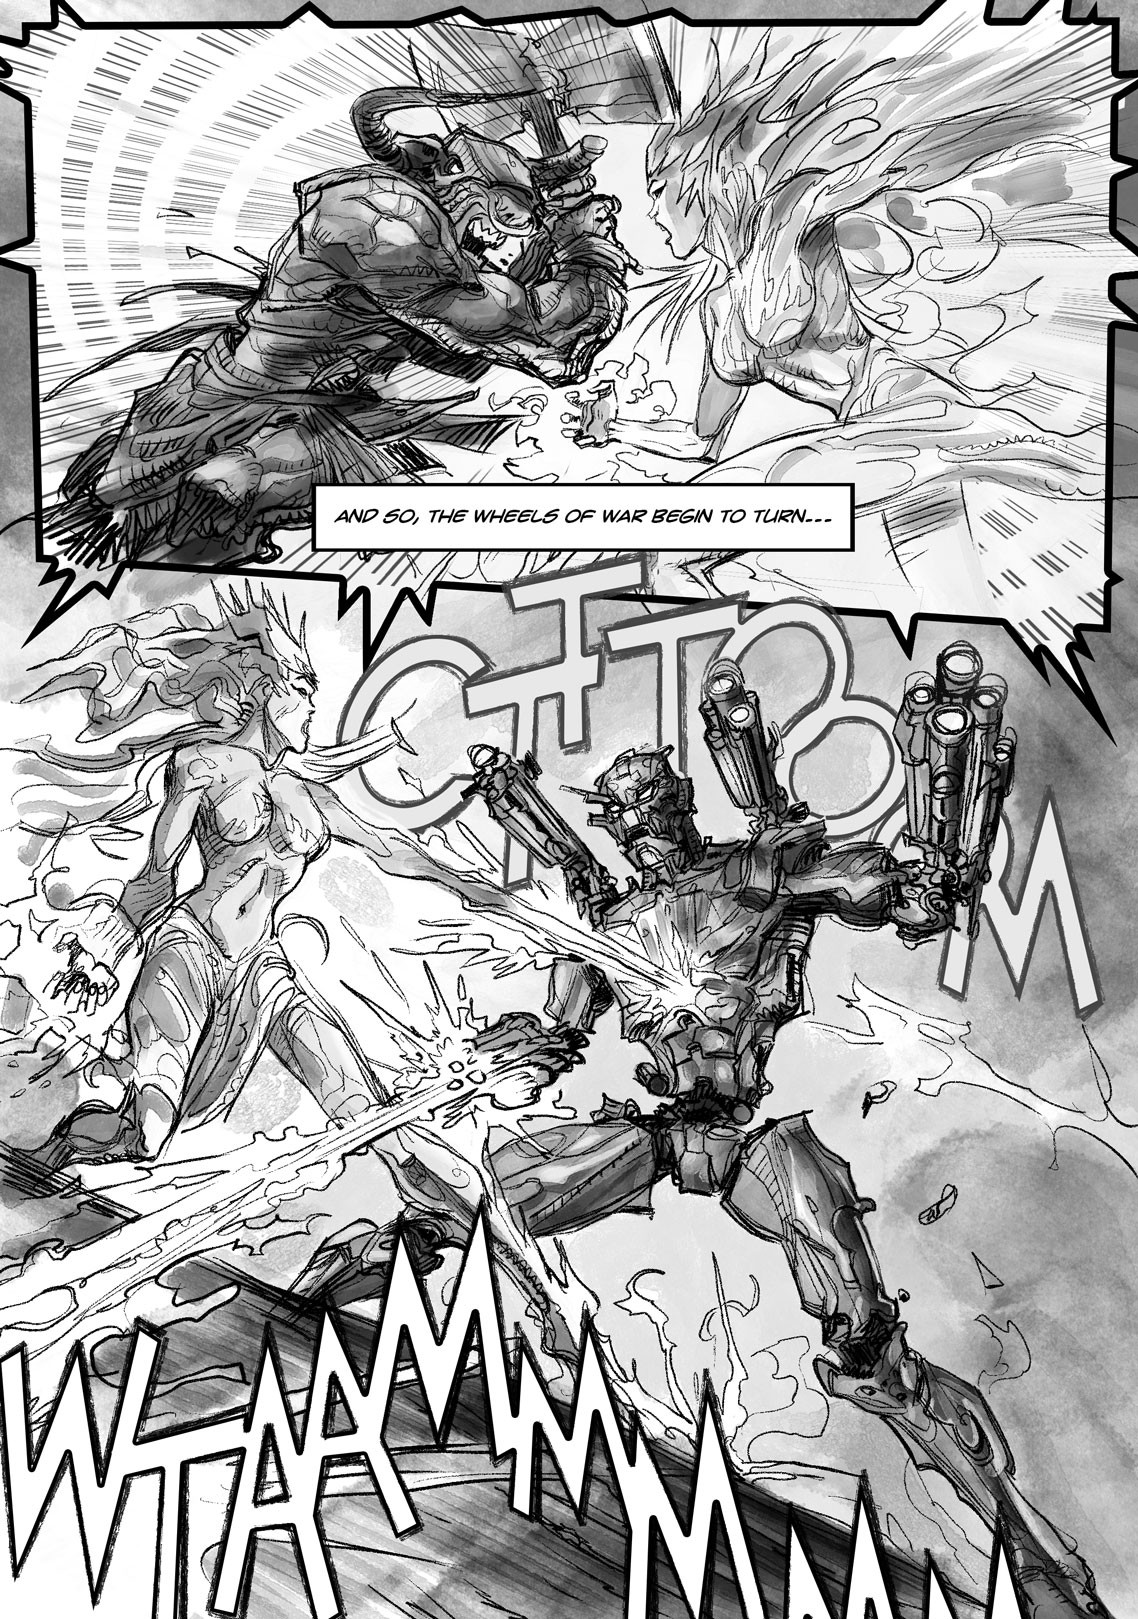 Daniele afferni 013 fight page 01